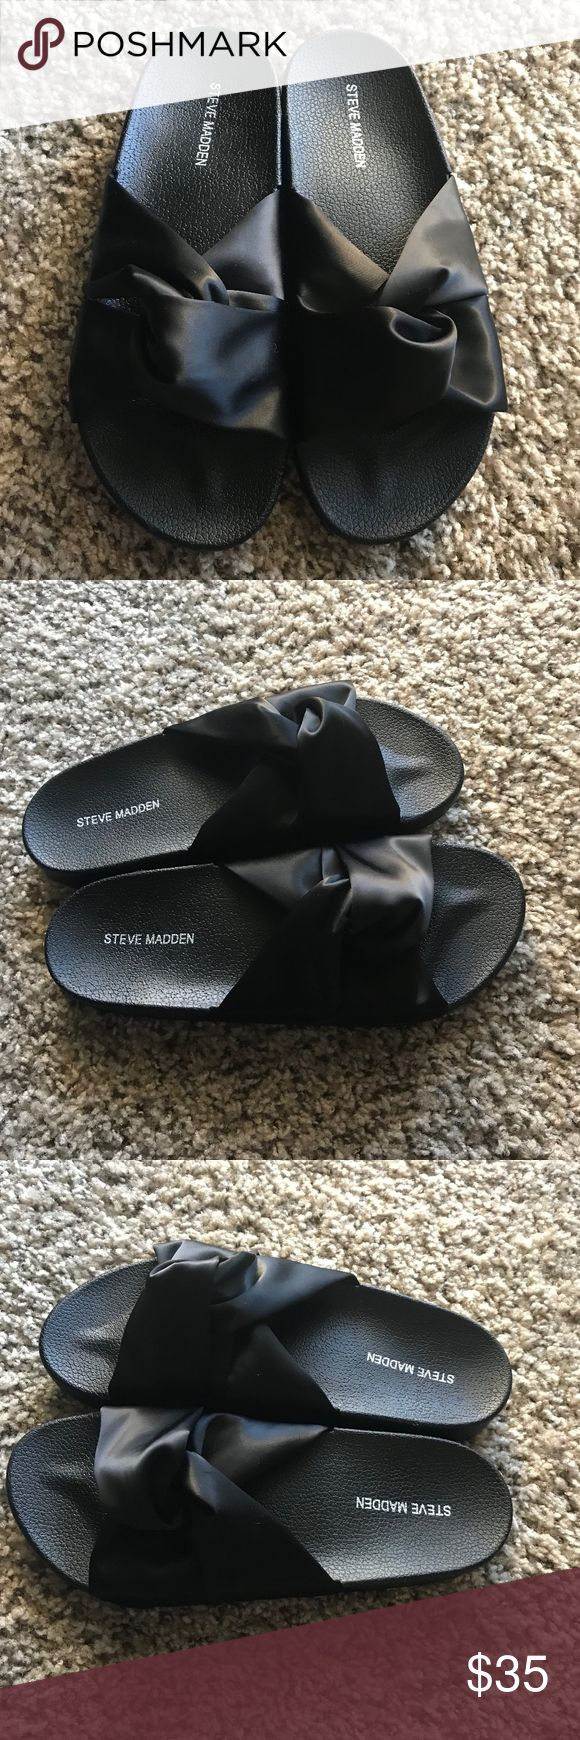 Steve Madden Black Ribbon Sandals NWOT Steve Madden Black Ribbon Sandals NWOT Never worn, excellent condition! No stains, rips, or holes Size:  8 Fits loosely Color: Coral  Make an offer! Steve Madden Shoes Sandals